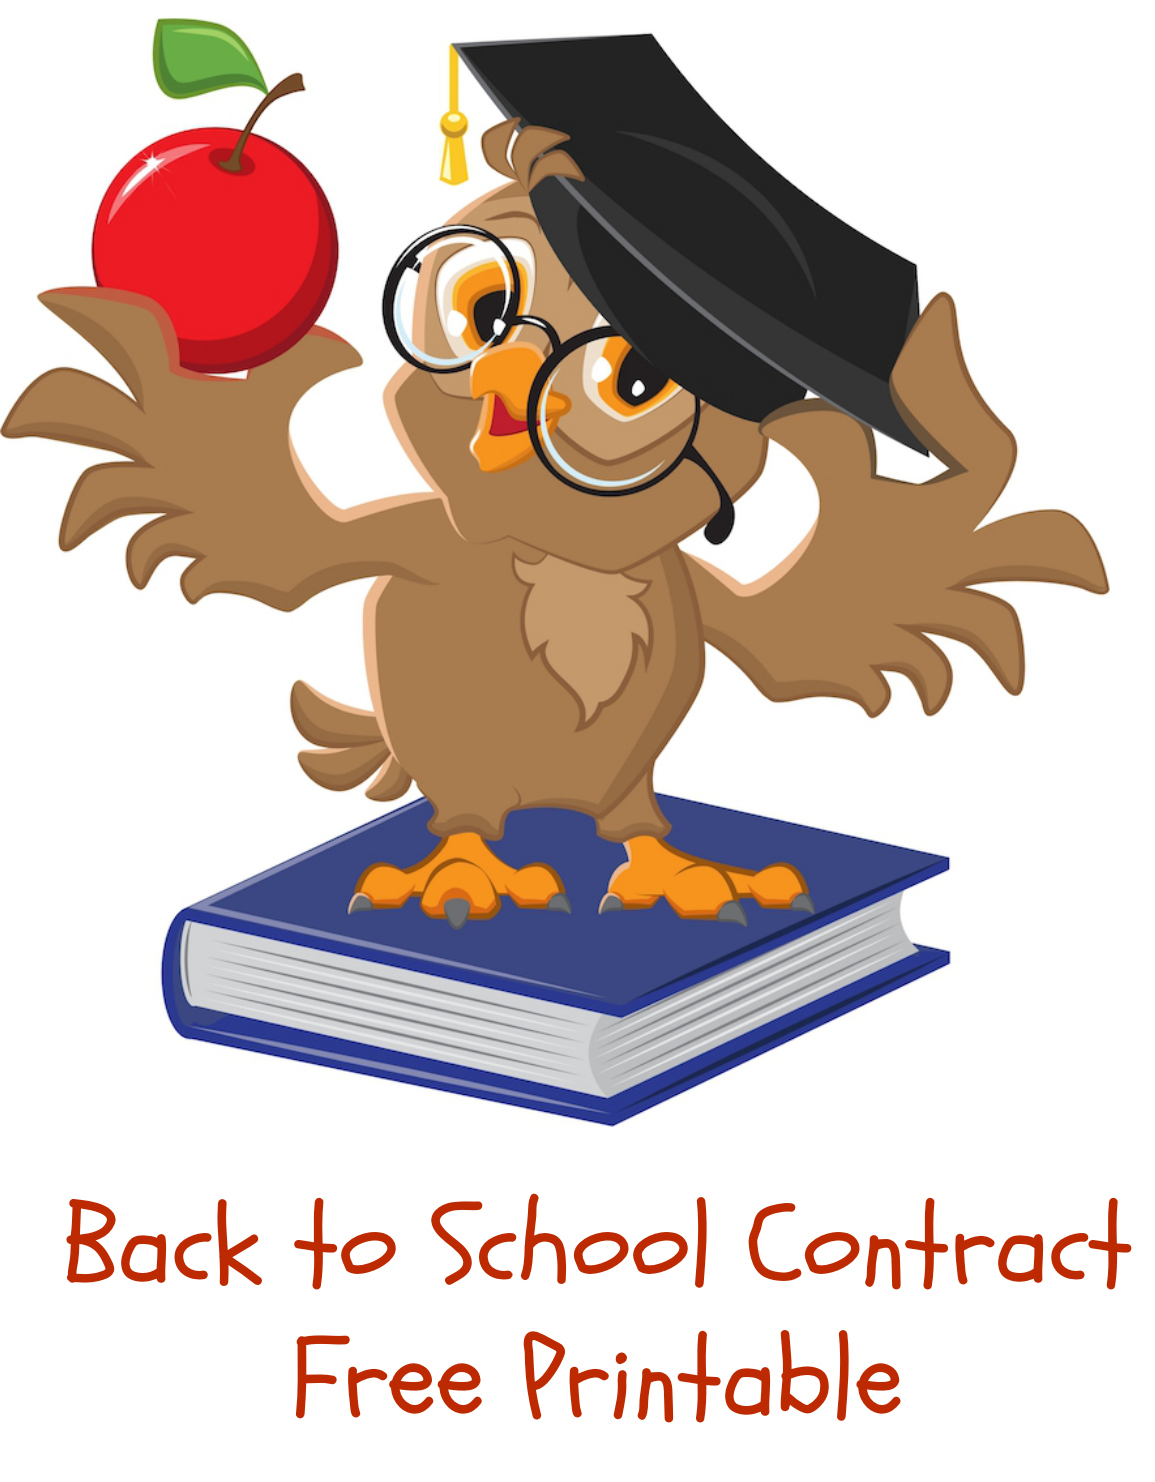 Free printable clipart back to school. Contract